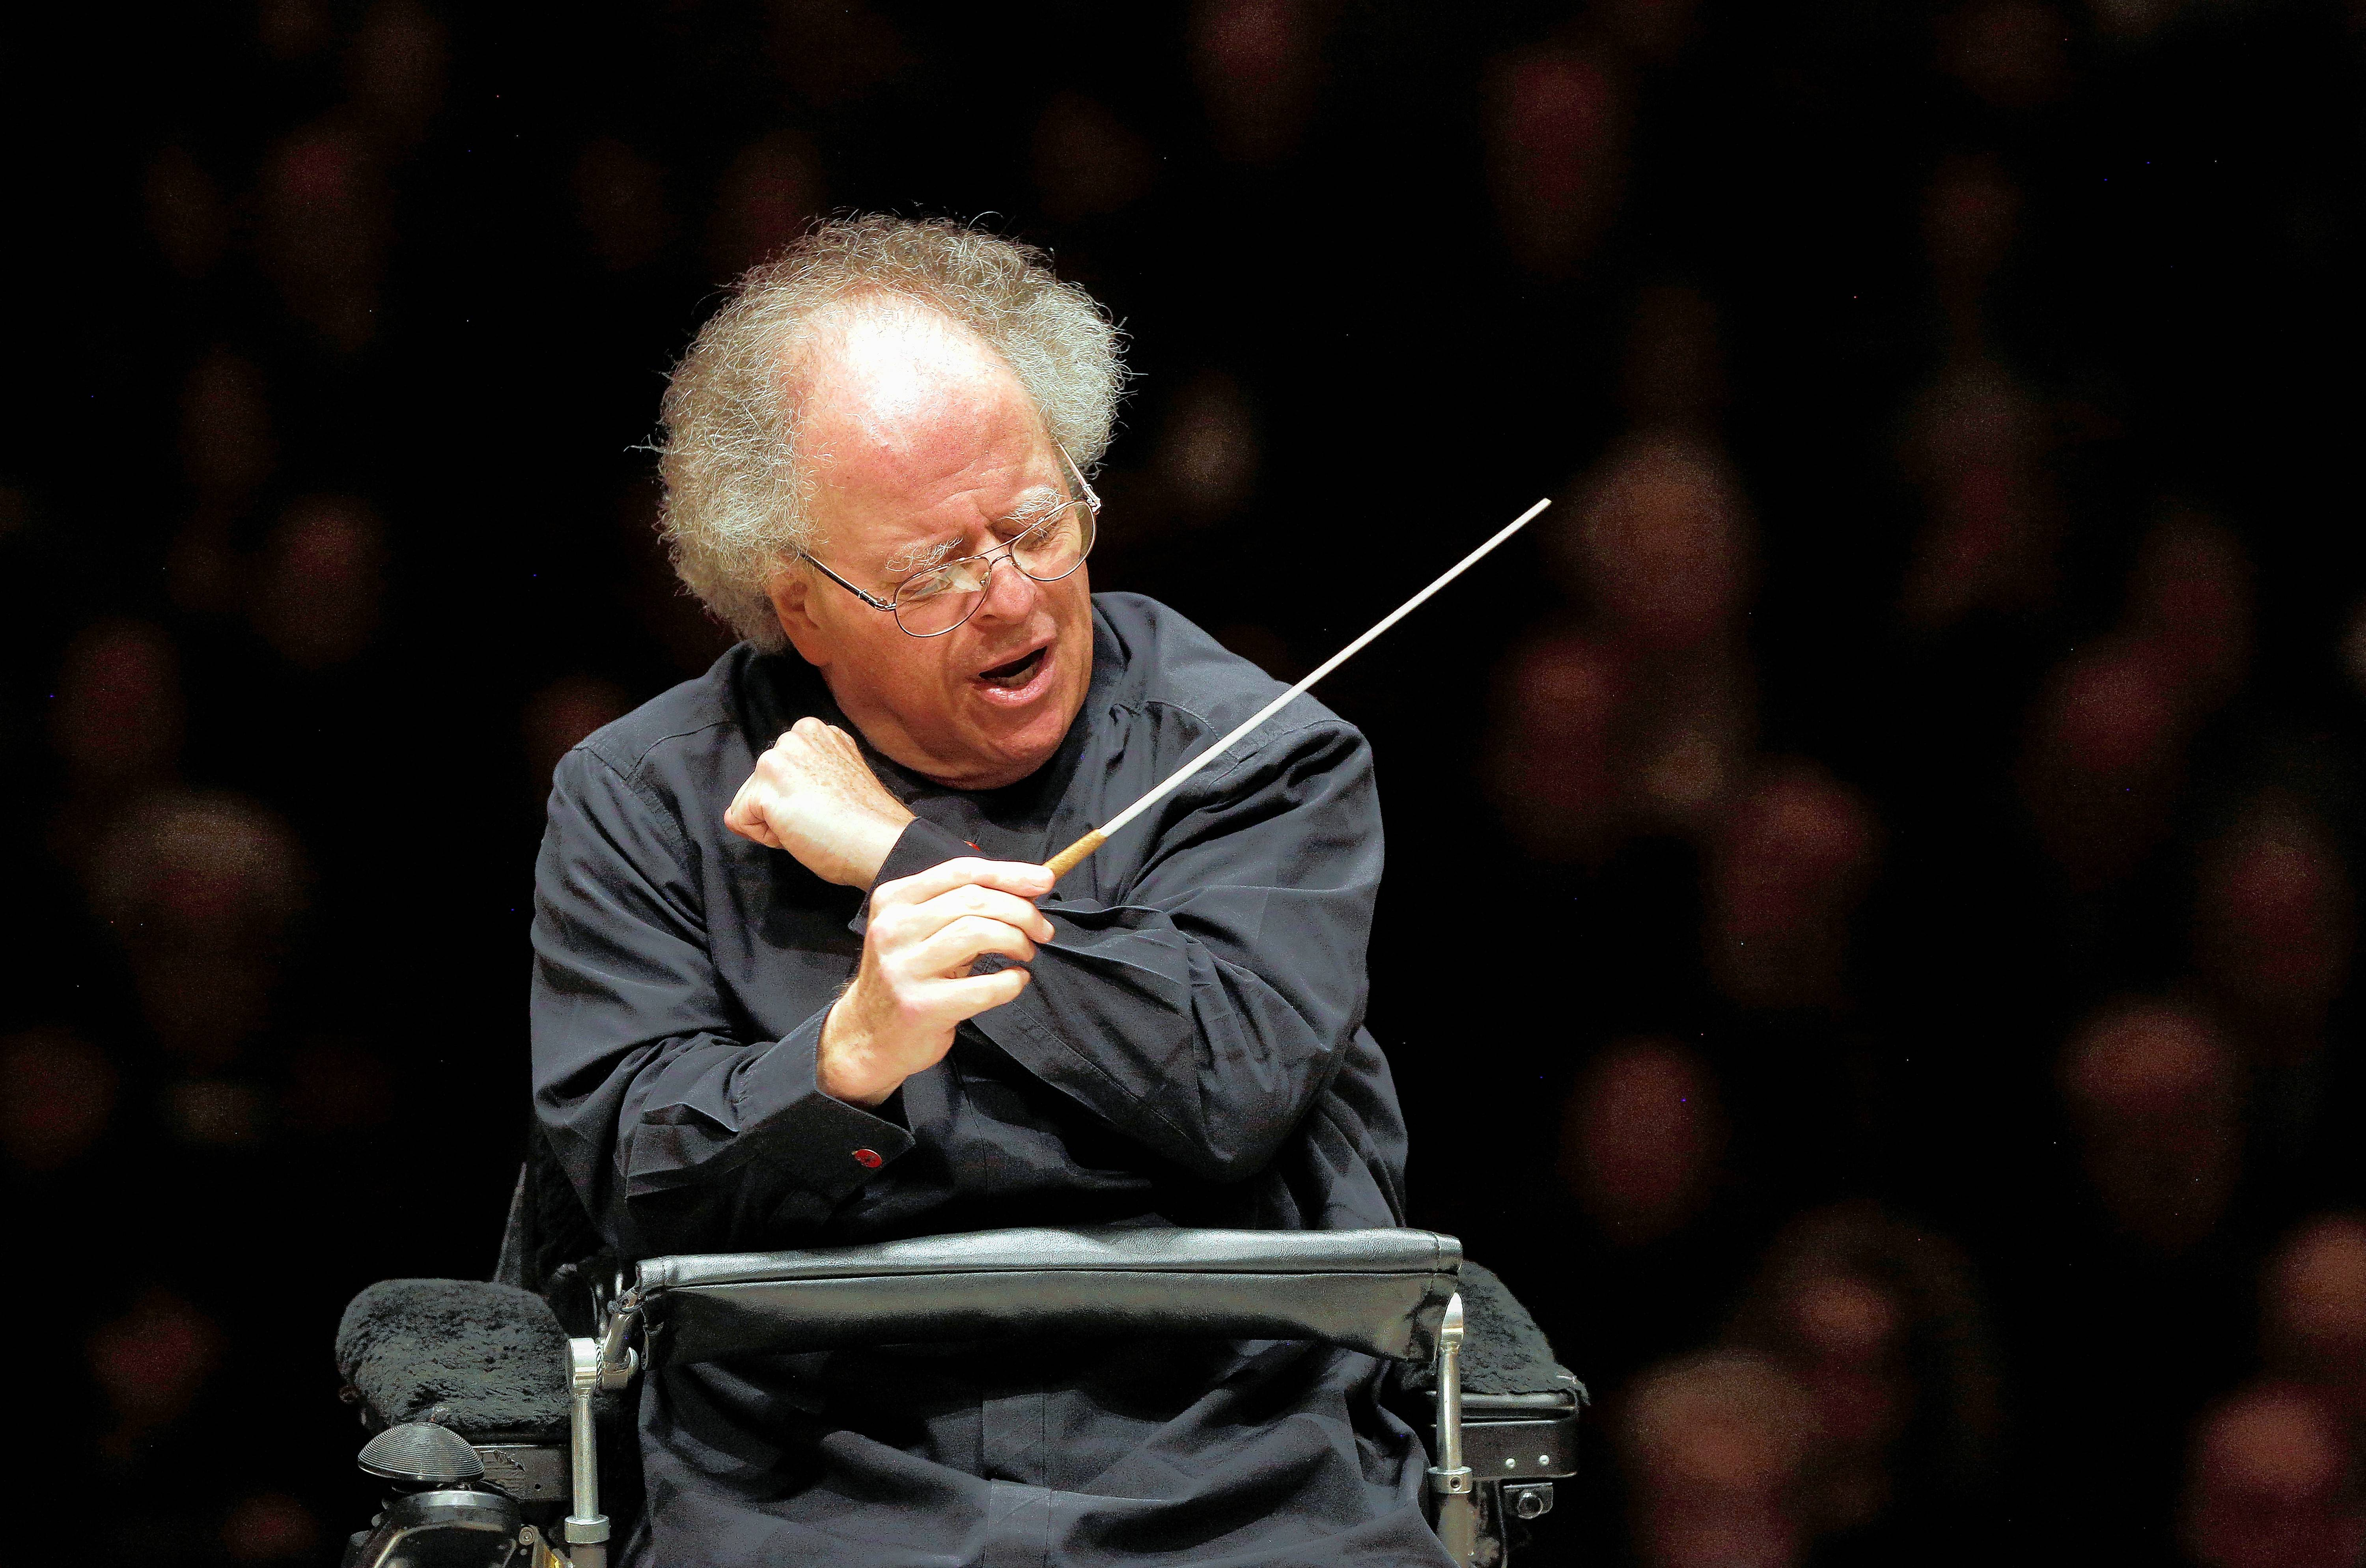 The Lake County state's attorney's office is investigating sex abuse allegations made against James Levine, who served as the music director of the Ravinia Festival from 1973 to 1993.